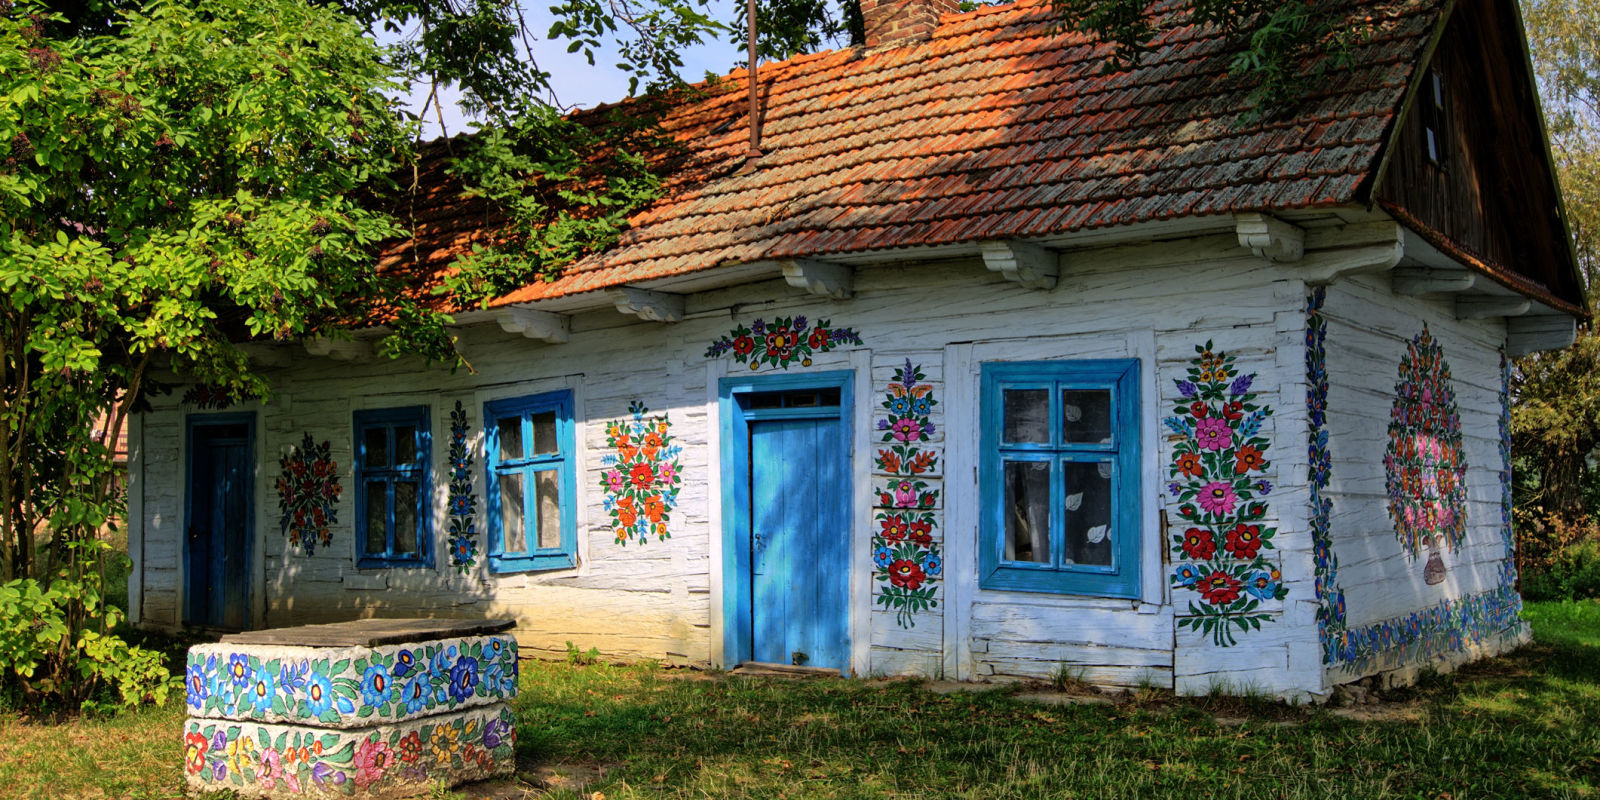 Poland 39 S Colourful Painted Village In Zalipie Is Charming